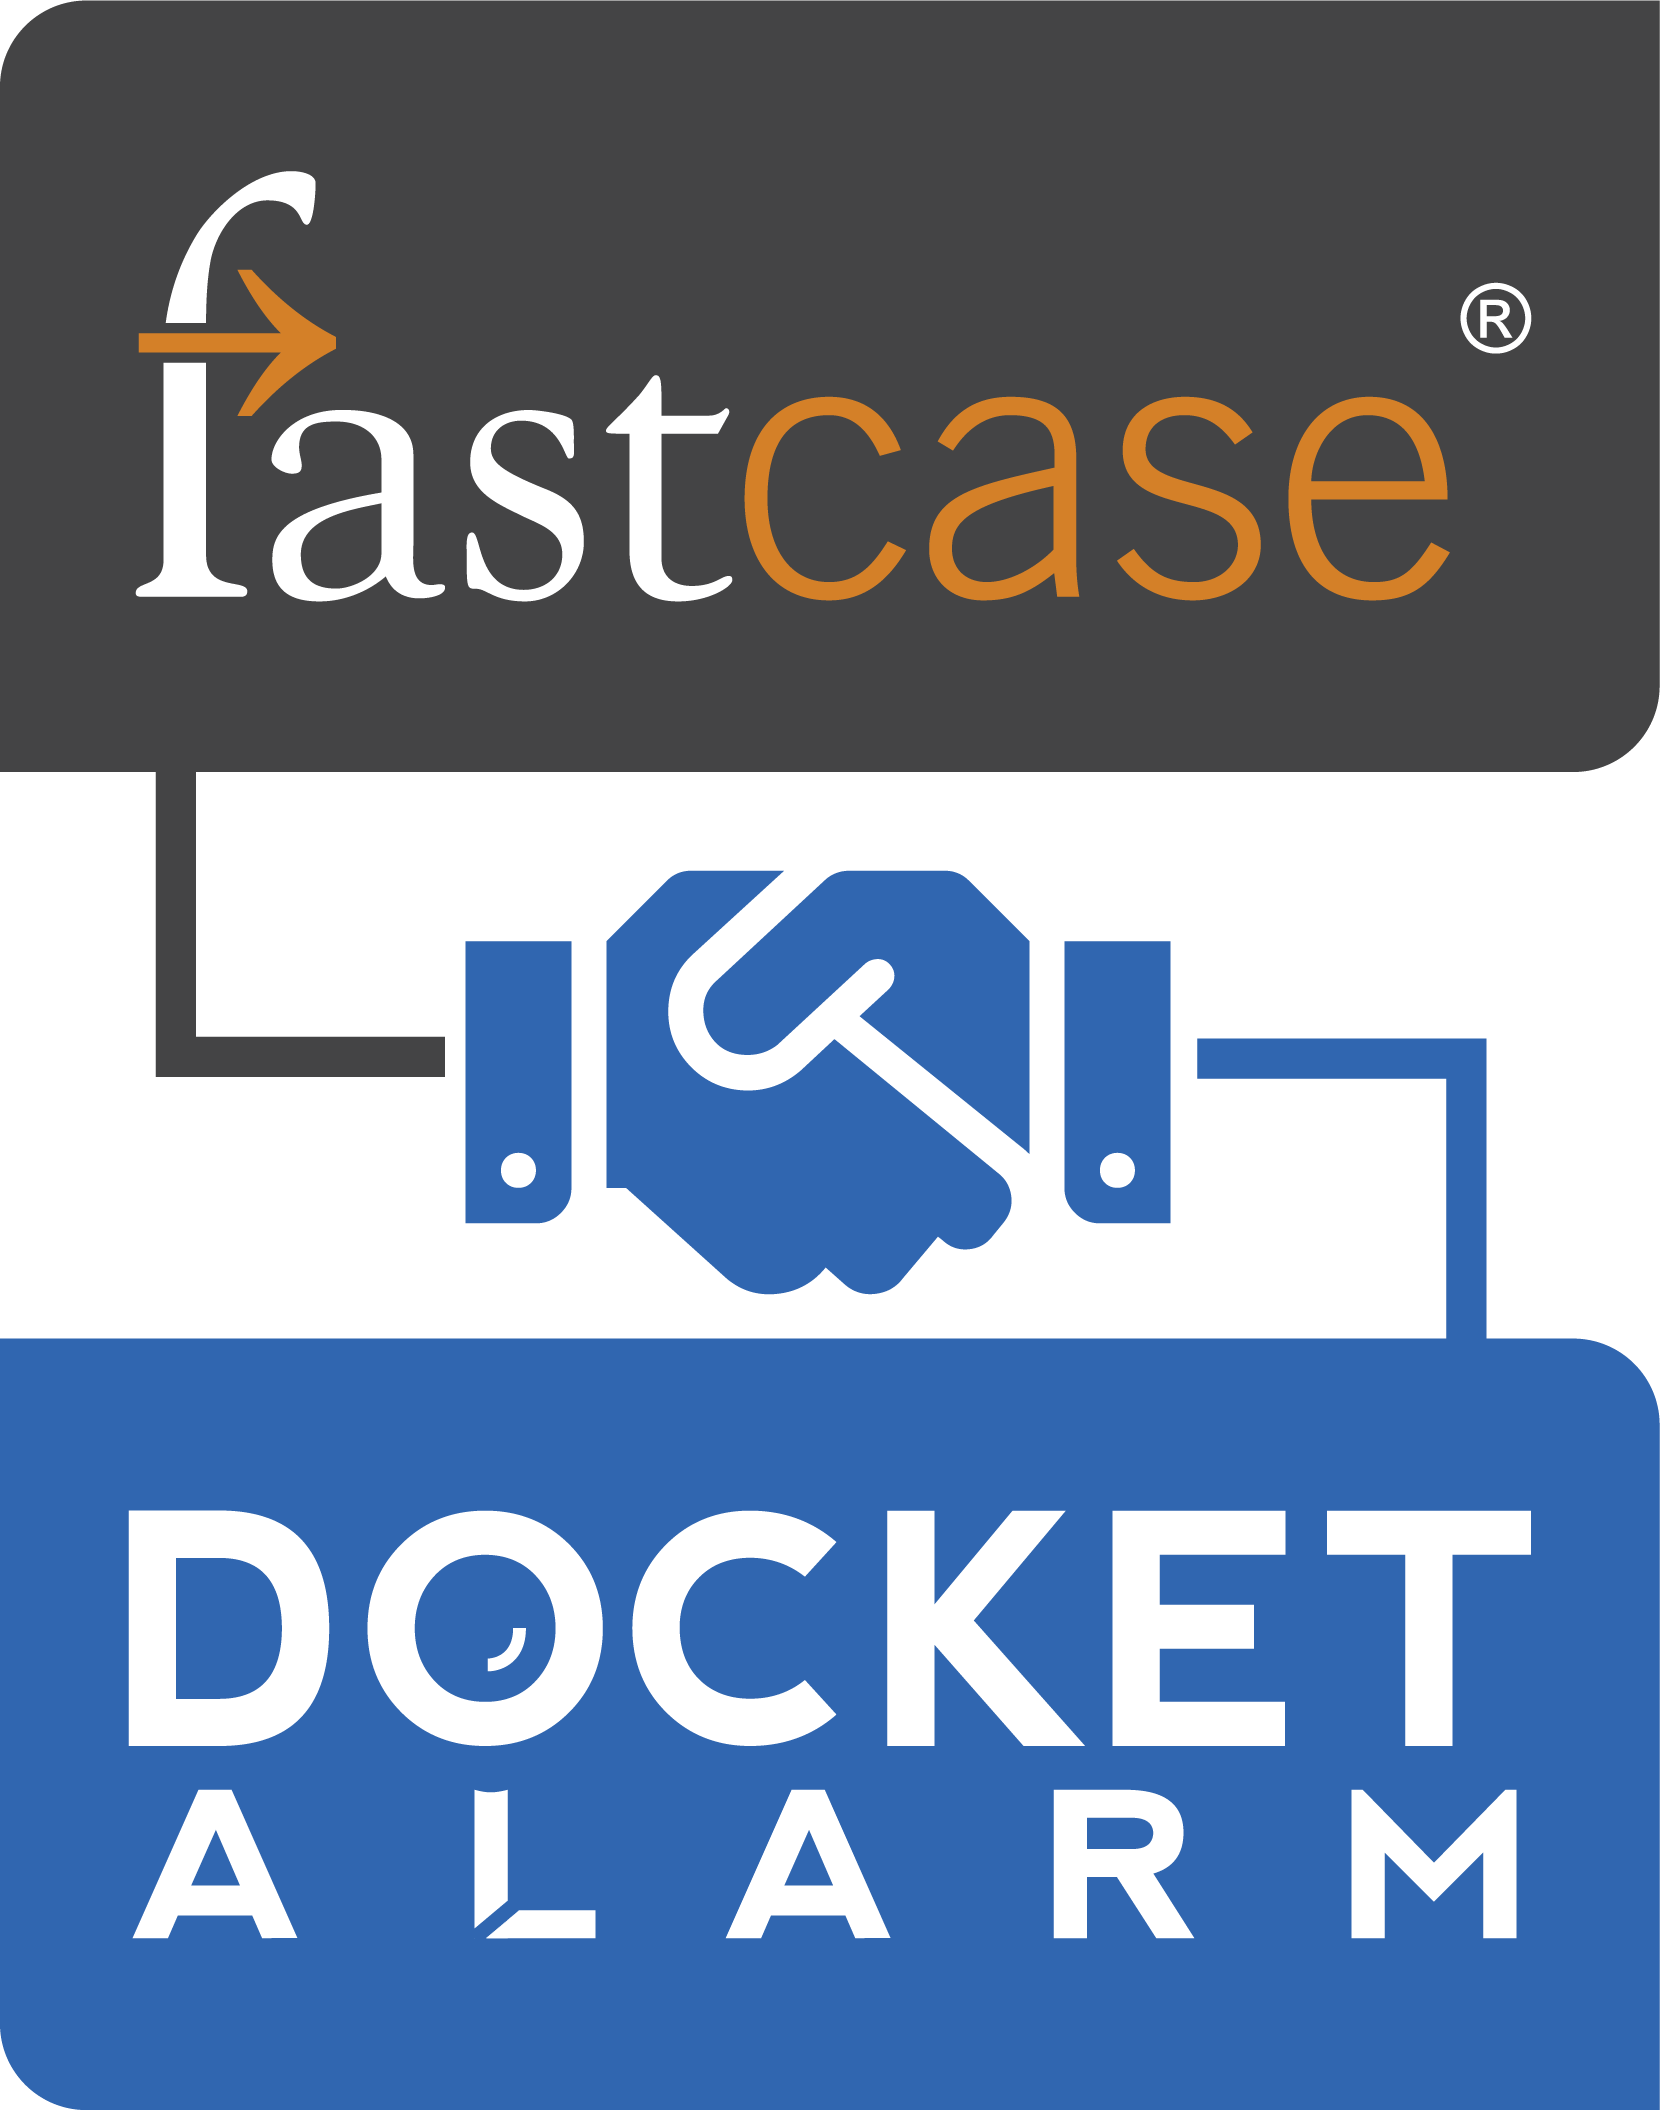 Fastcase and Docket Alarm merger